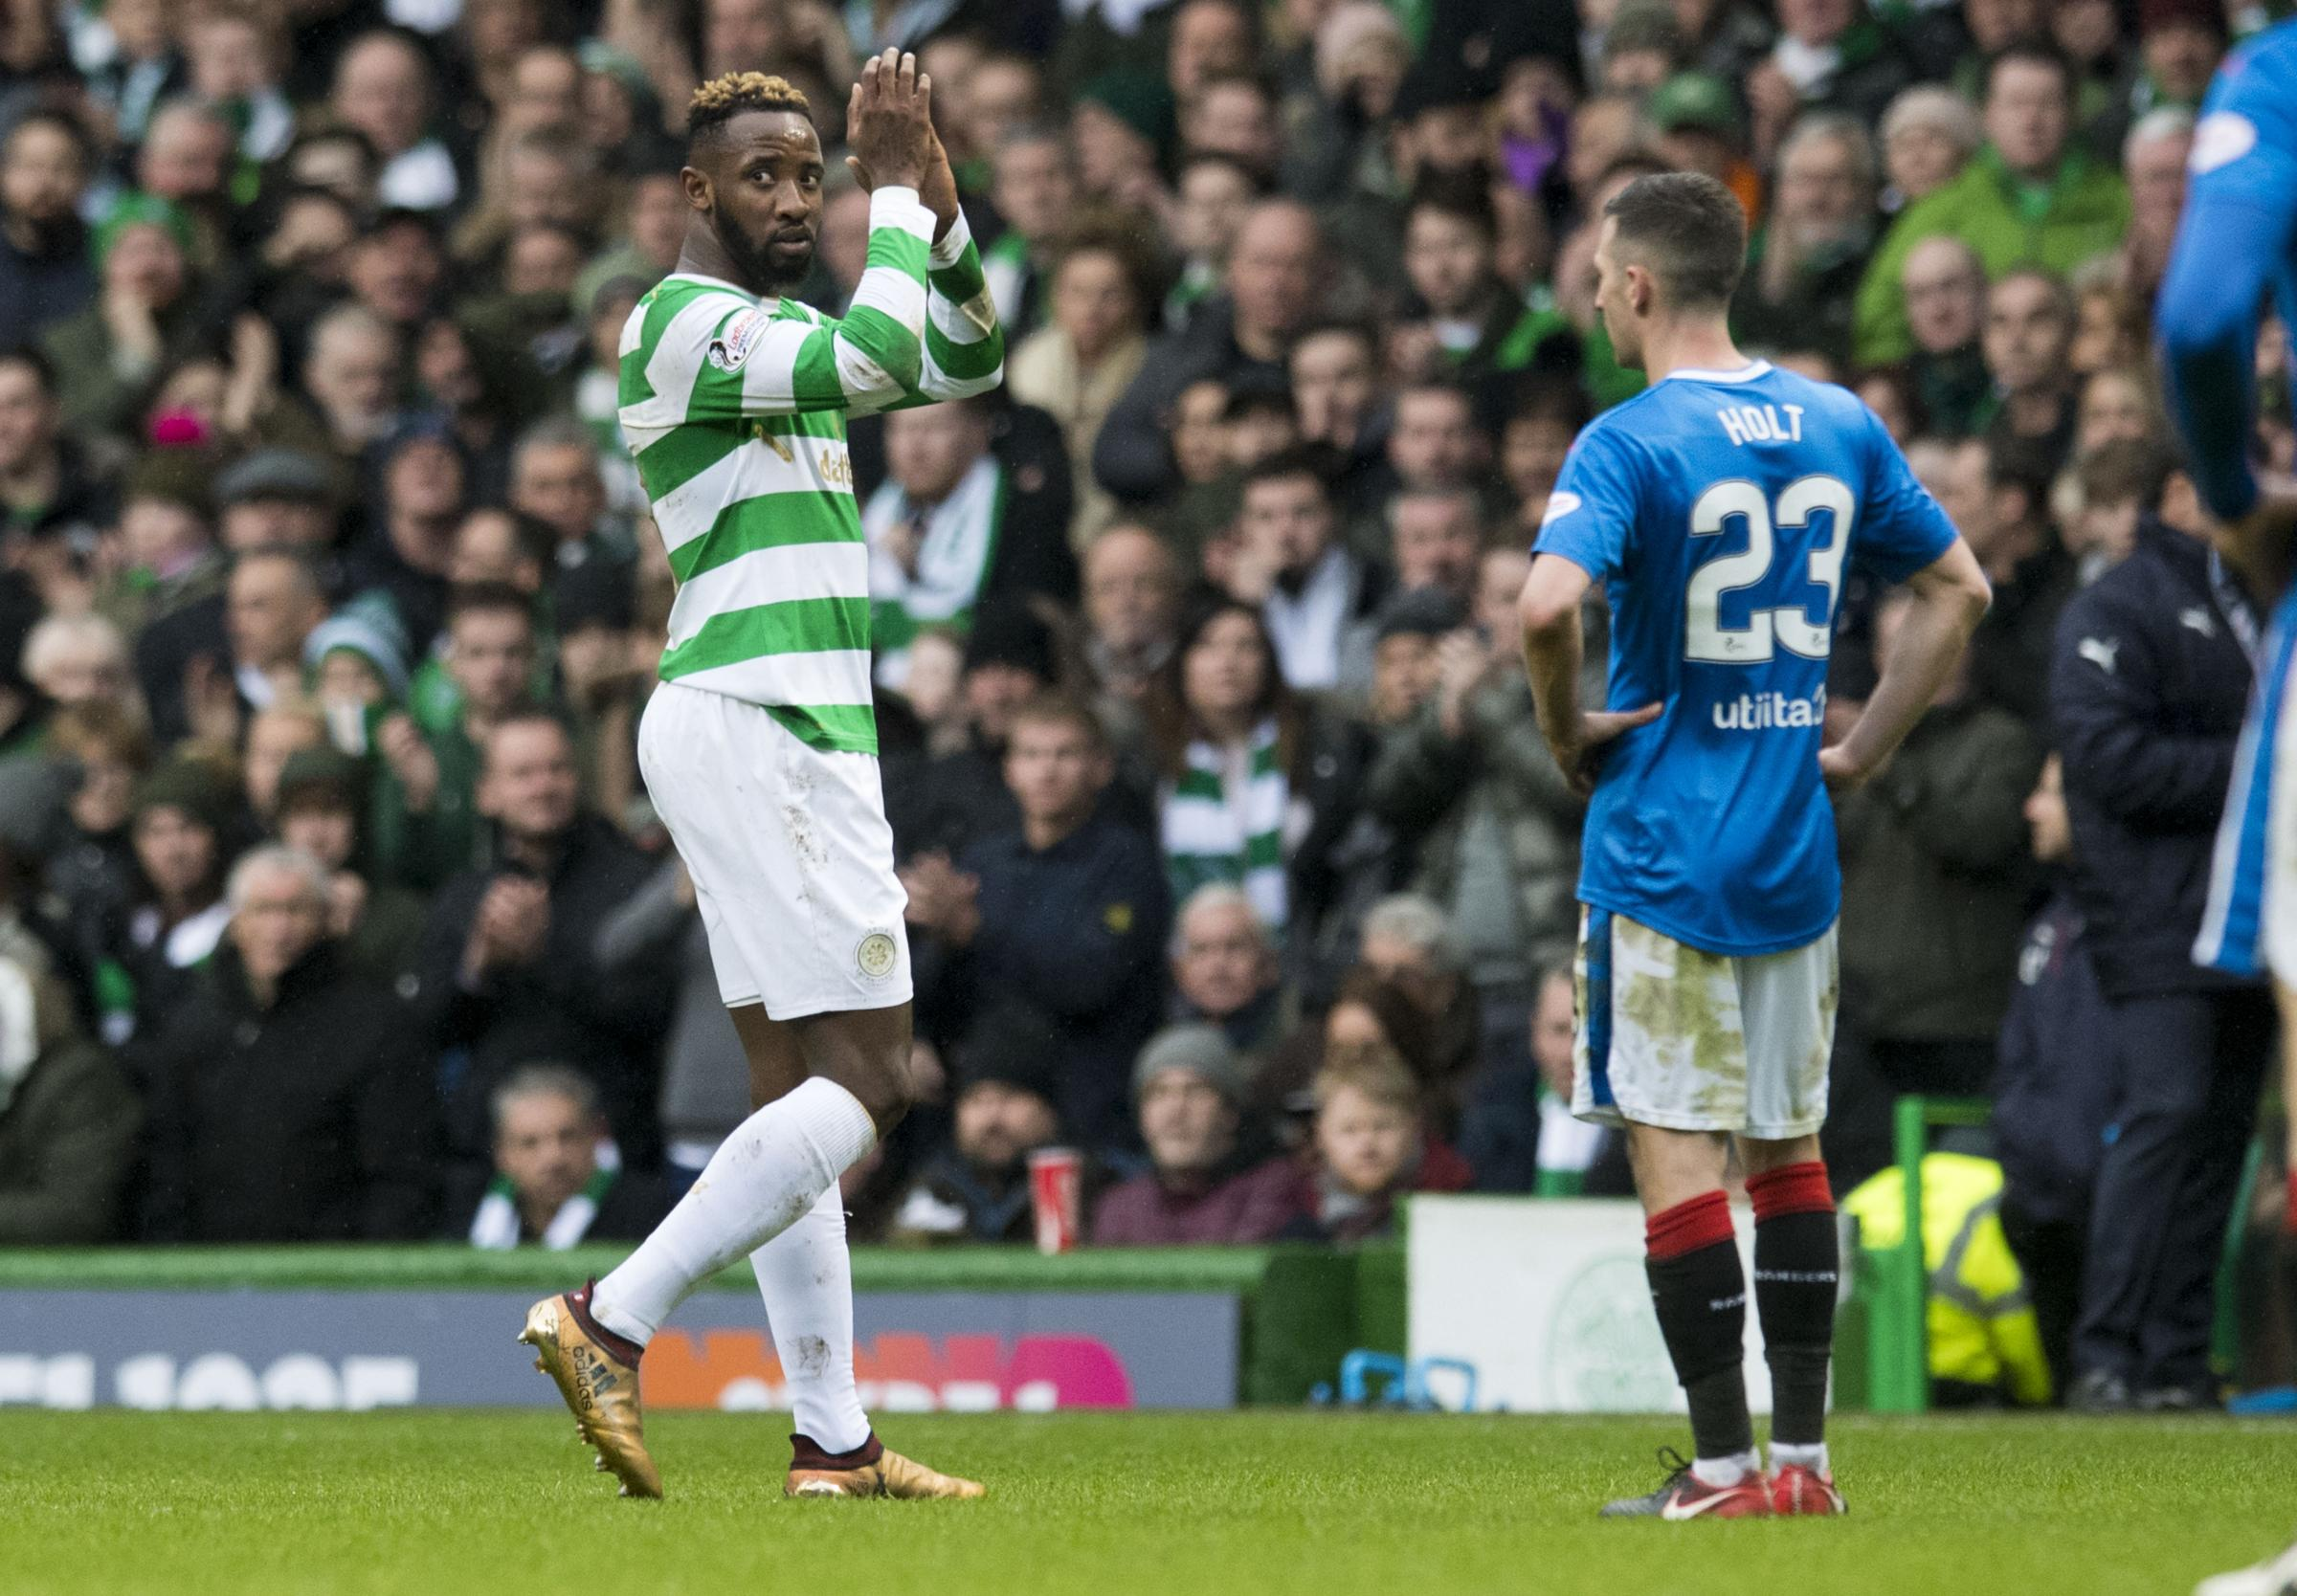 Moussa Dembele applauds the Celtic support as he leaves the filed during Saturday's 0-0 draw with Rangers